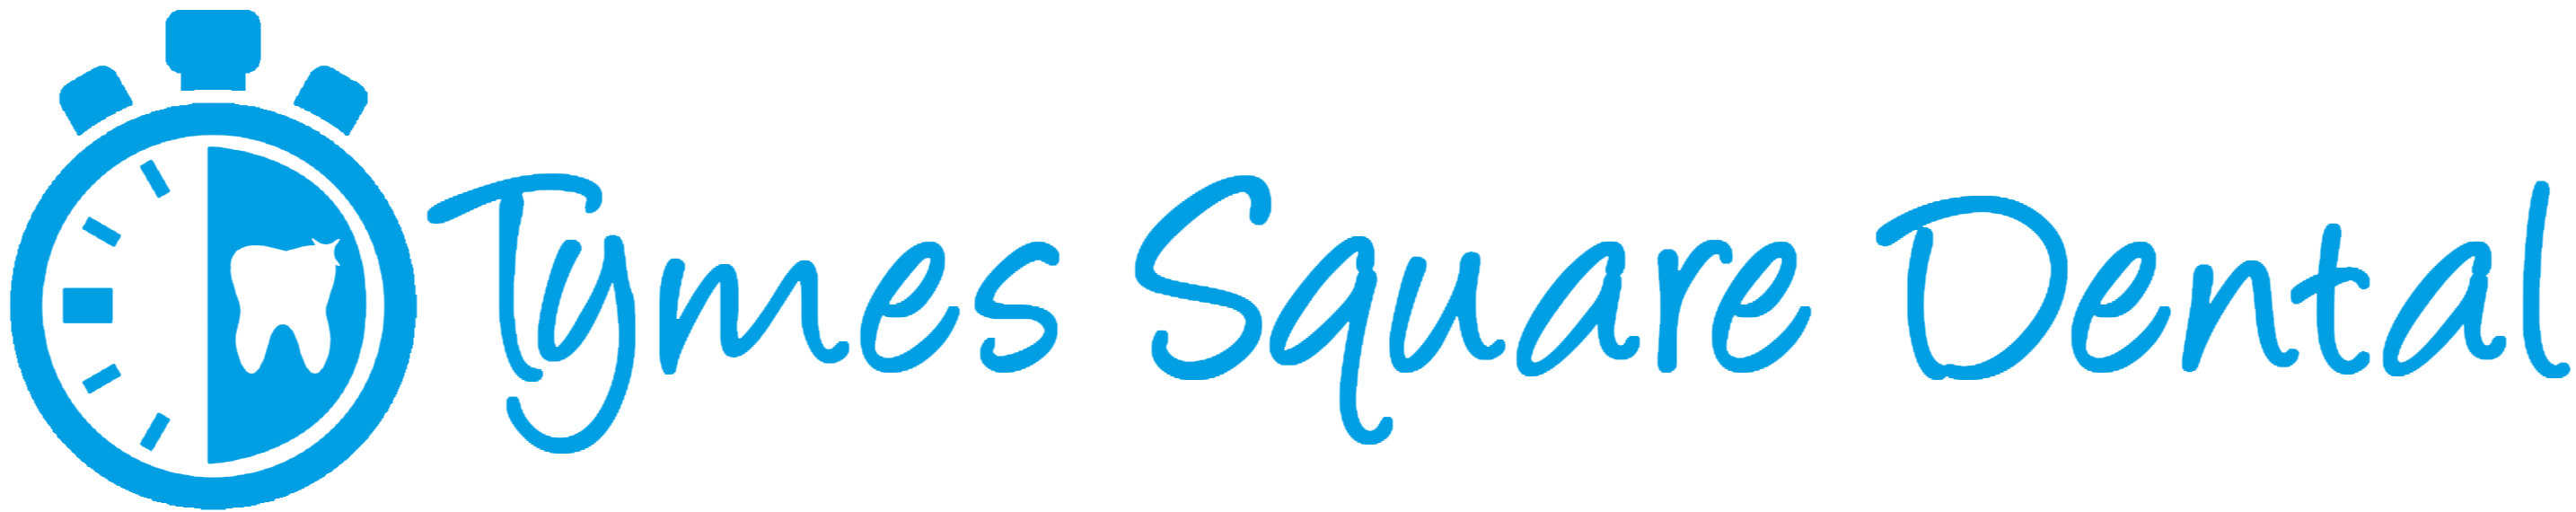 Tymes Square Dental